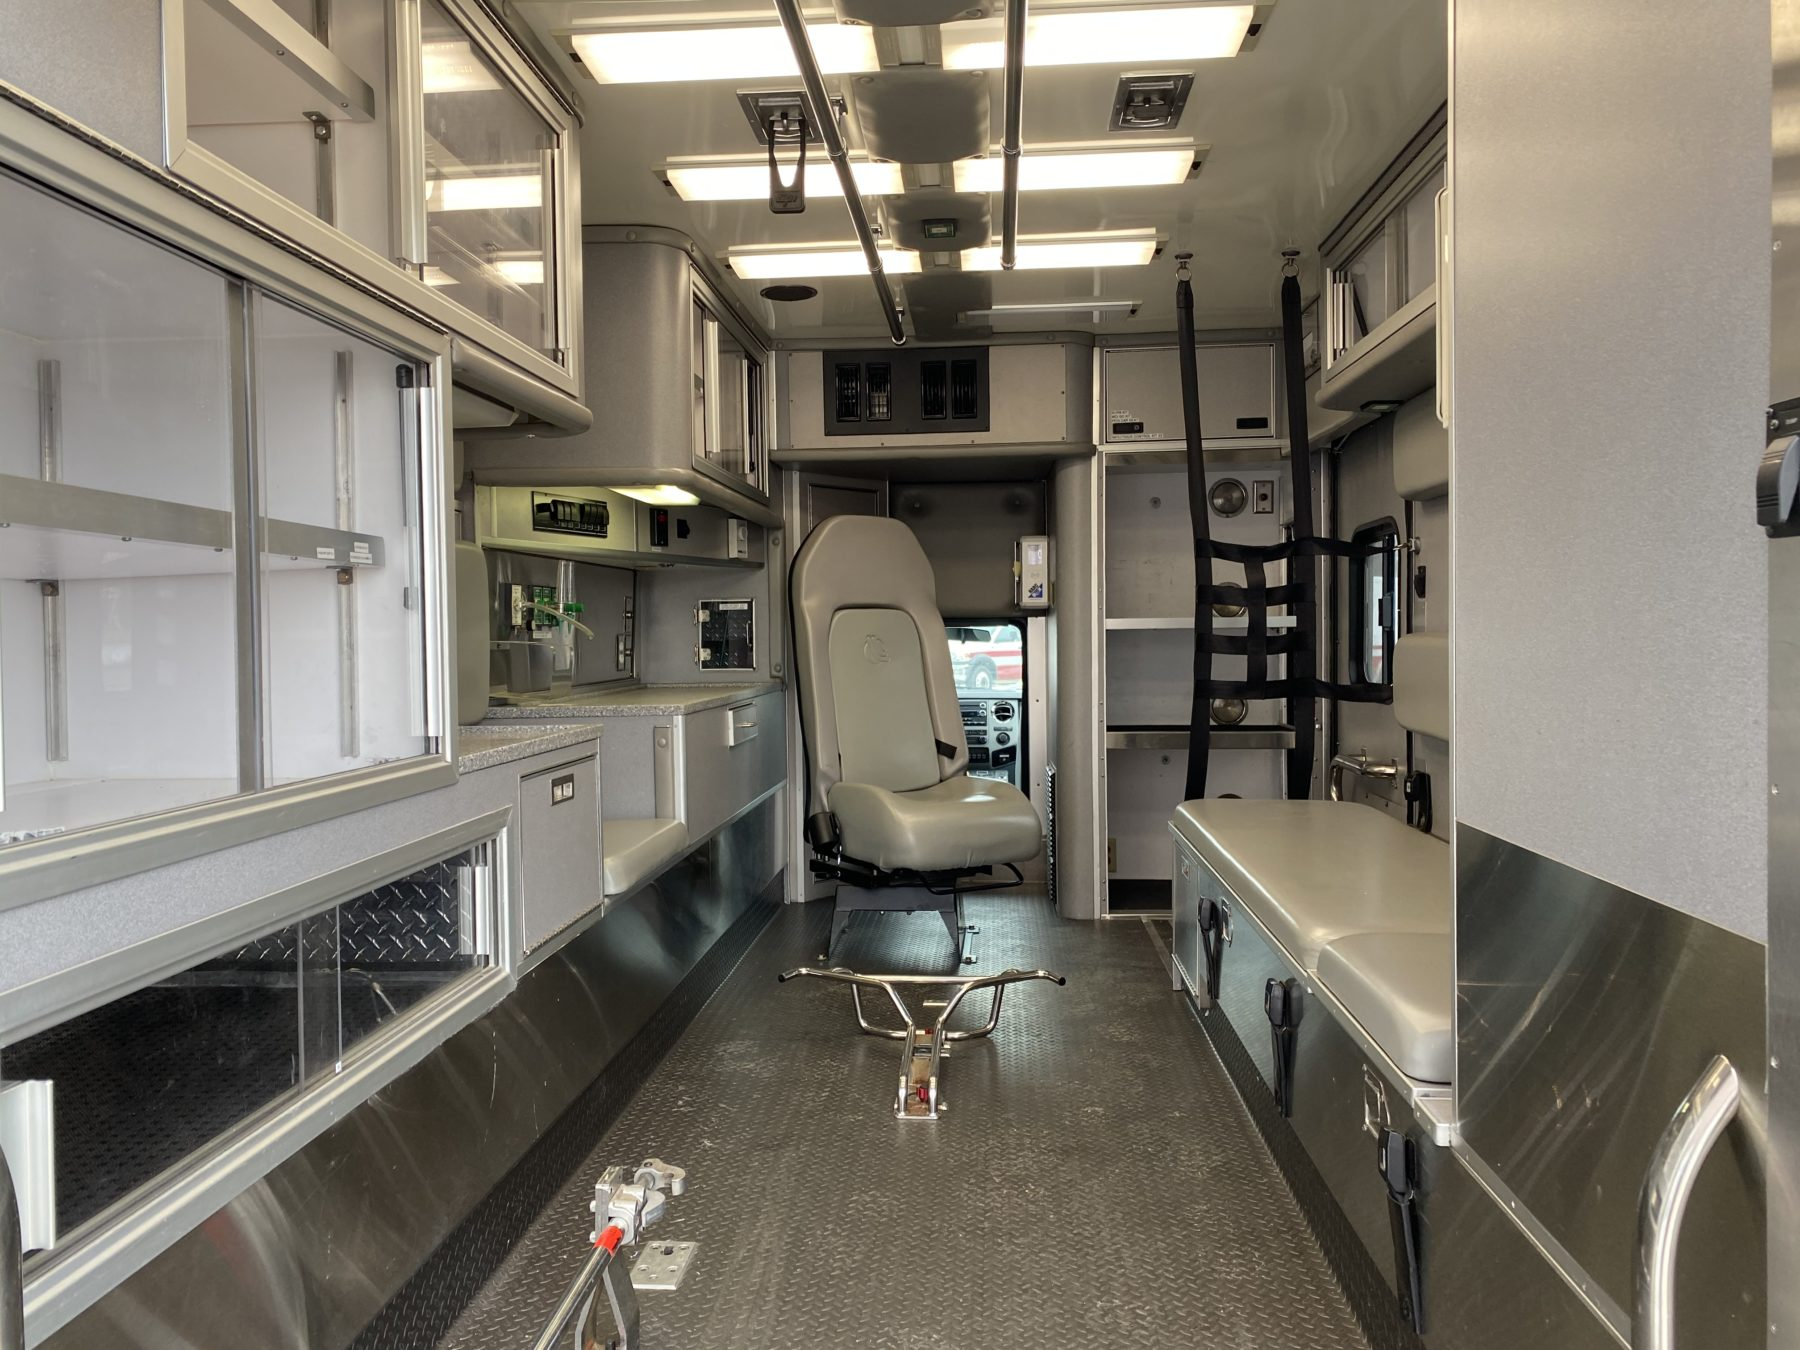 2015 Ford F450 4x4 Heavy Duty Ambulance For Sale – Picture 2